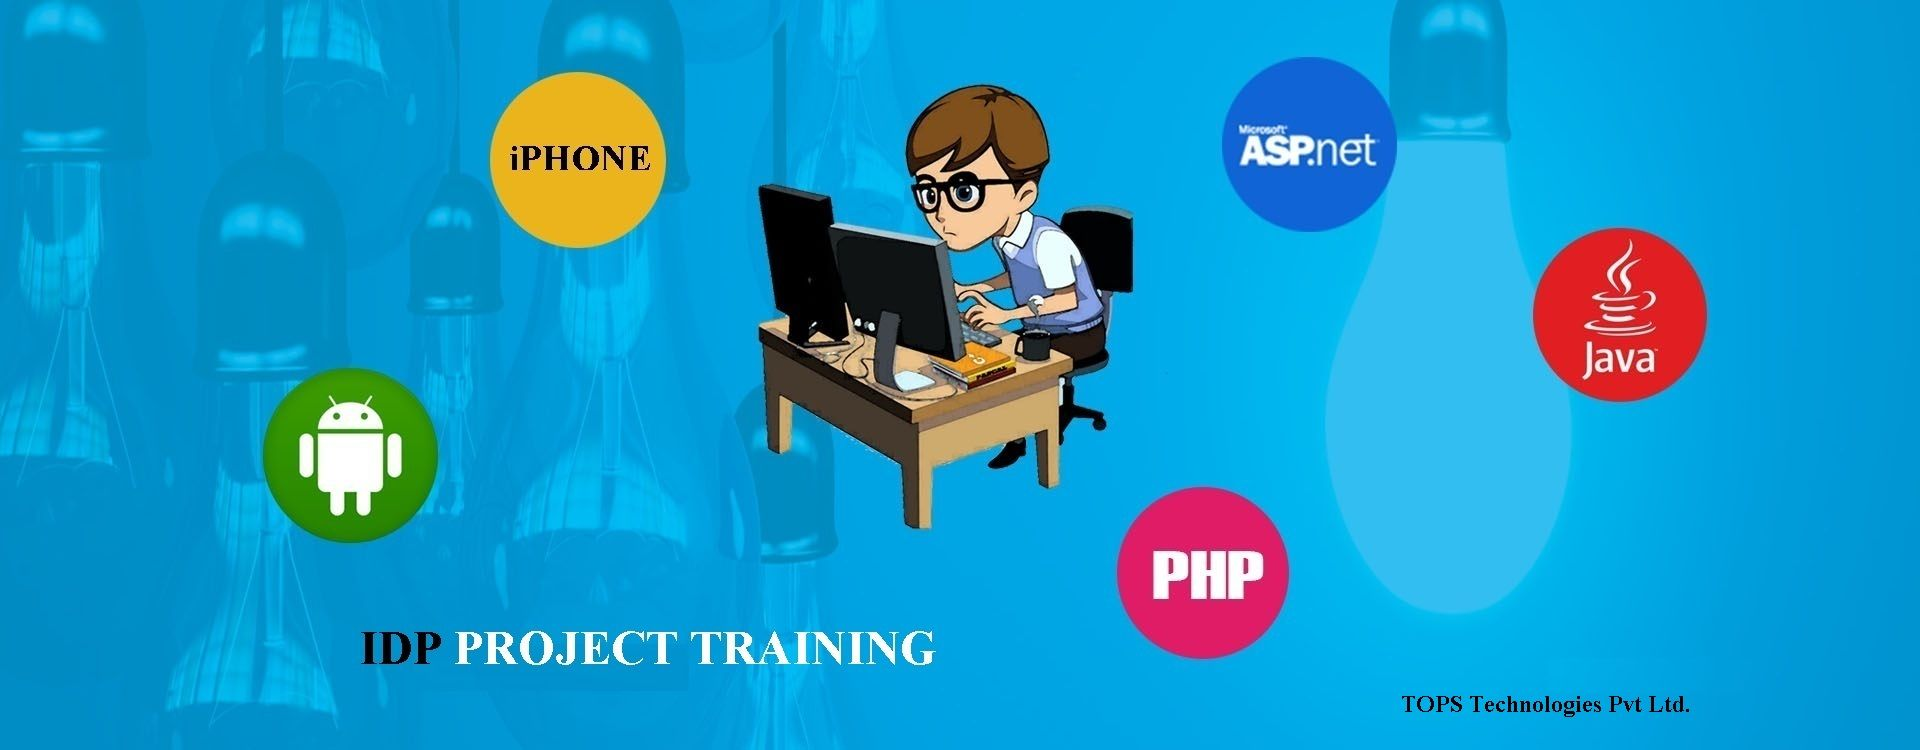 How to Select the Most Effective Project Training